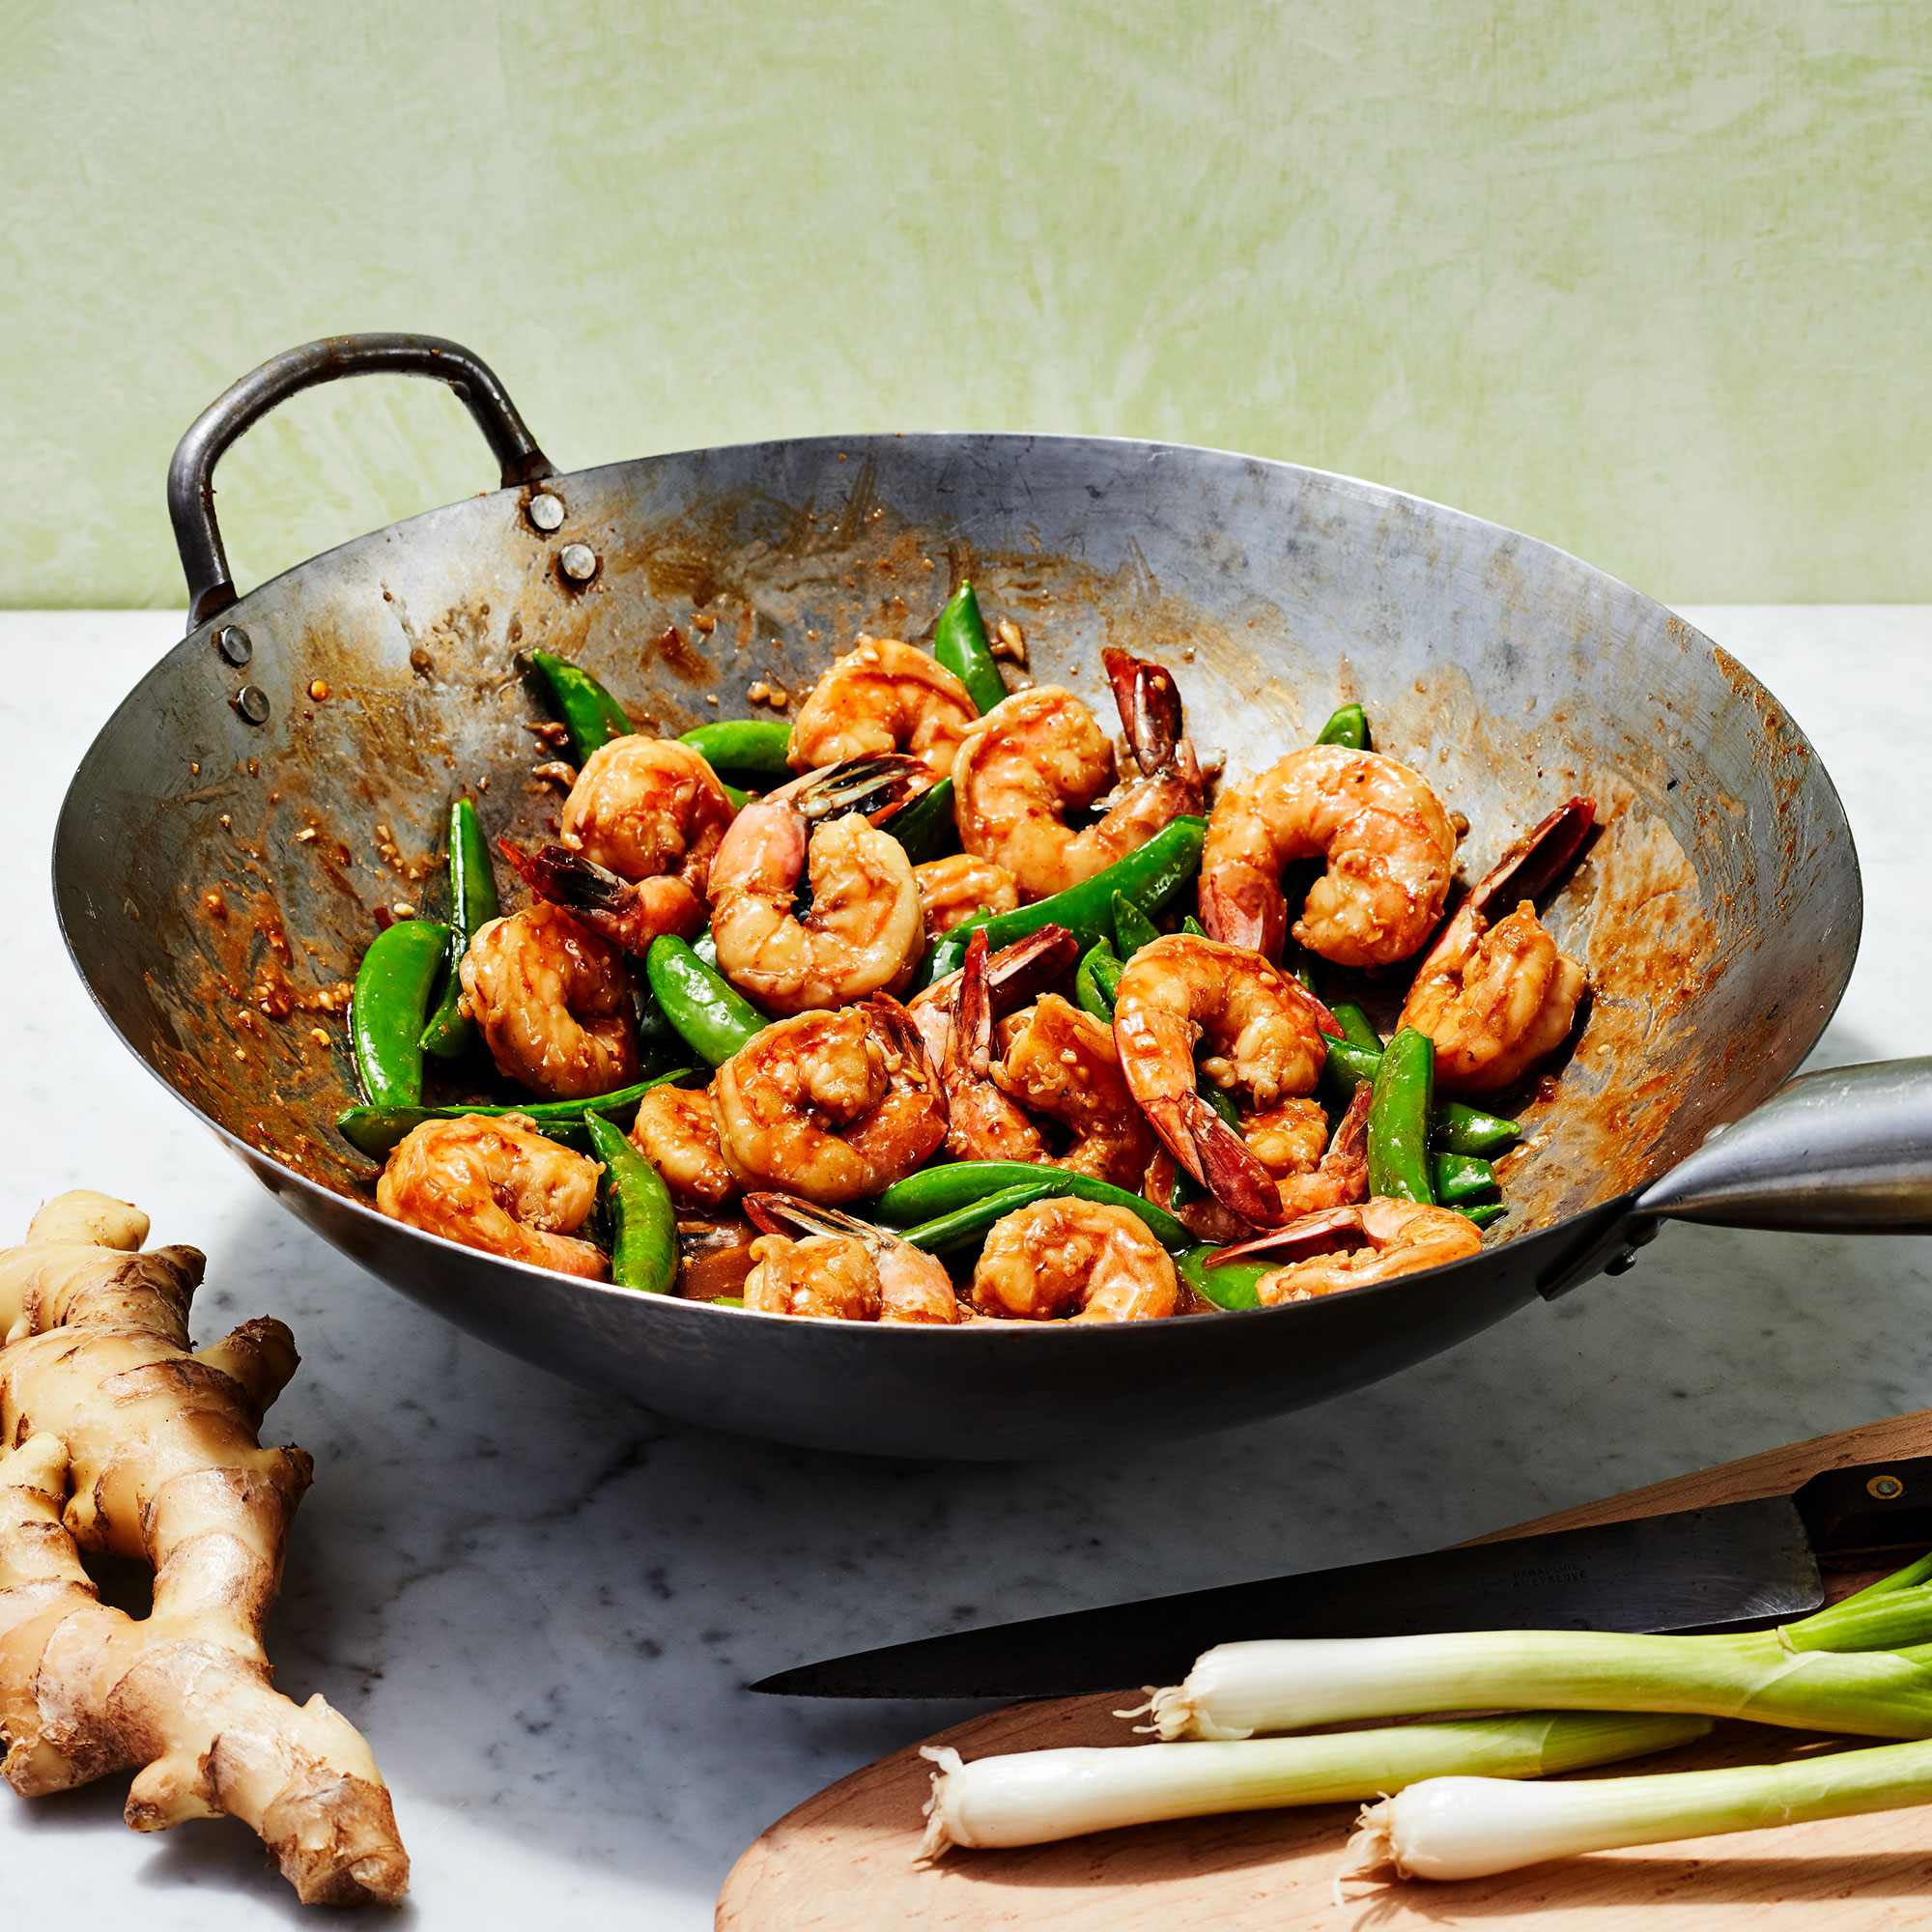 Stir-Fried Shrimp & Sugar Snap Peas